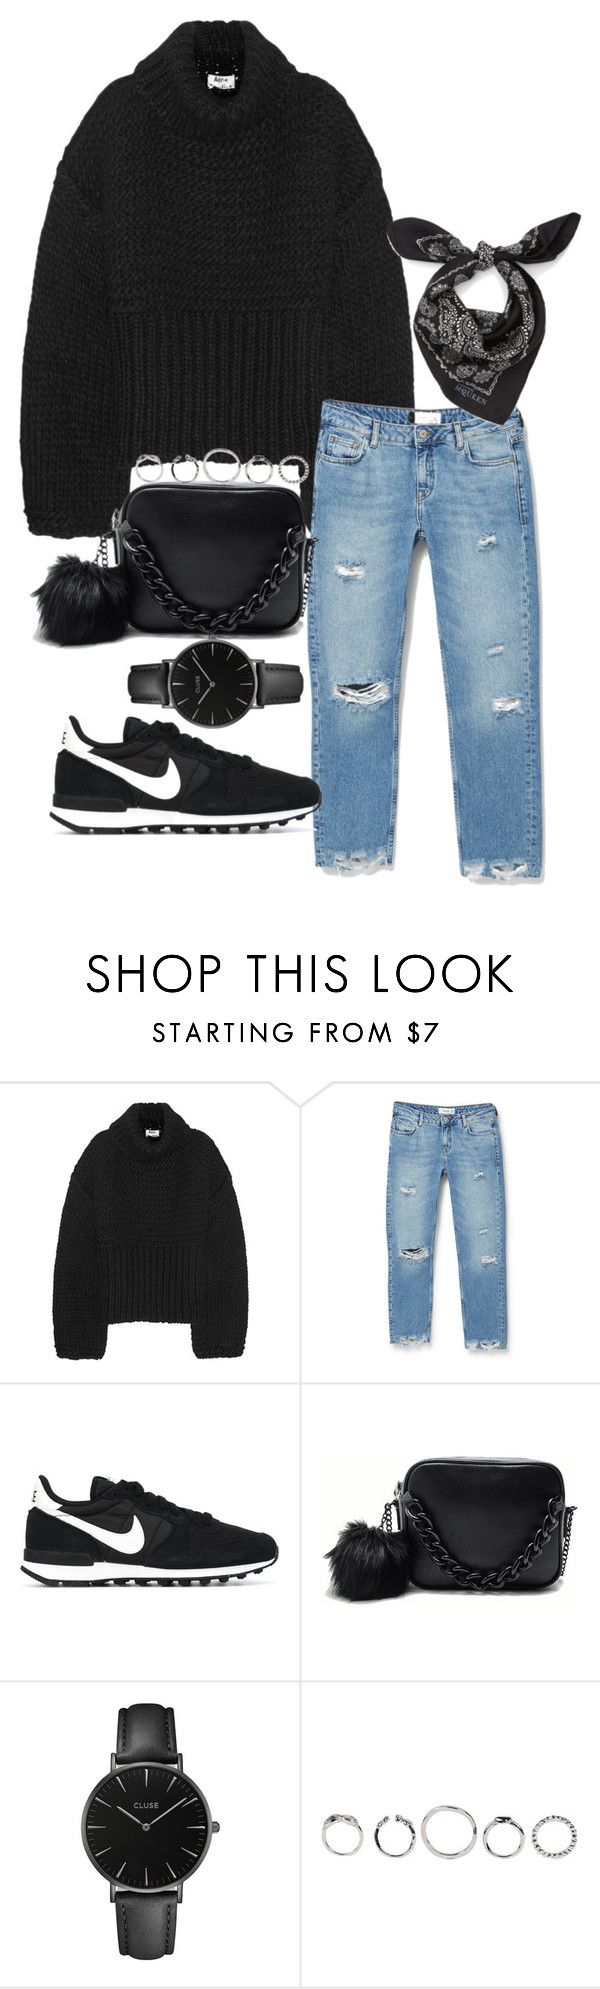 """#696"" by blendingtwostyles ❤ liked on Polyvore featuring Acne Studios, MANGO, NIKE, CLUSE and Alexander McQueen"